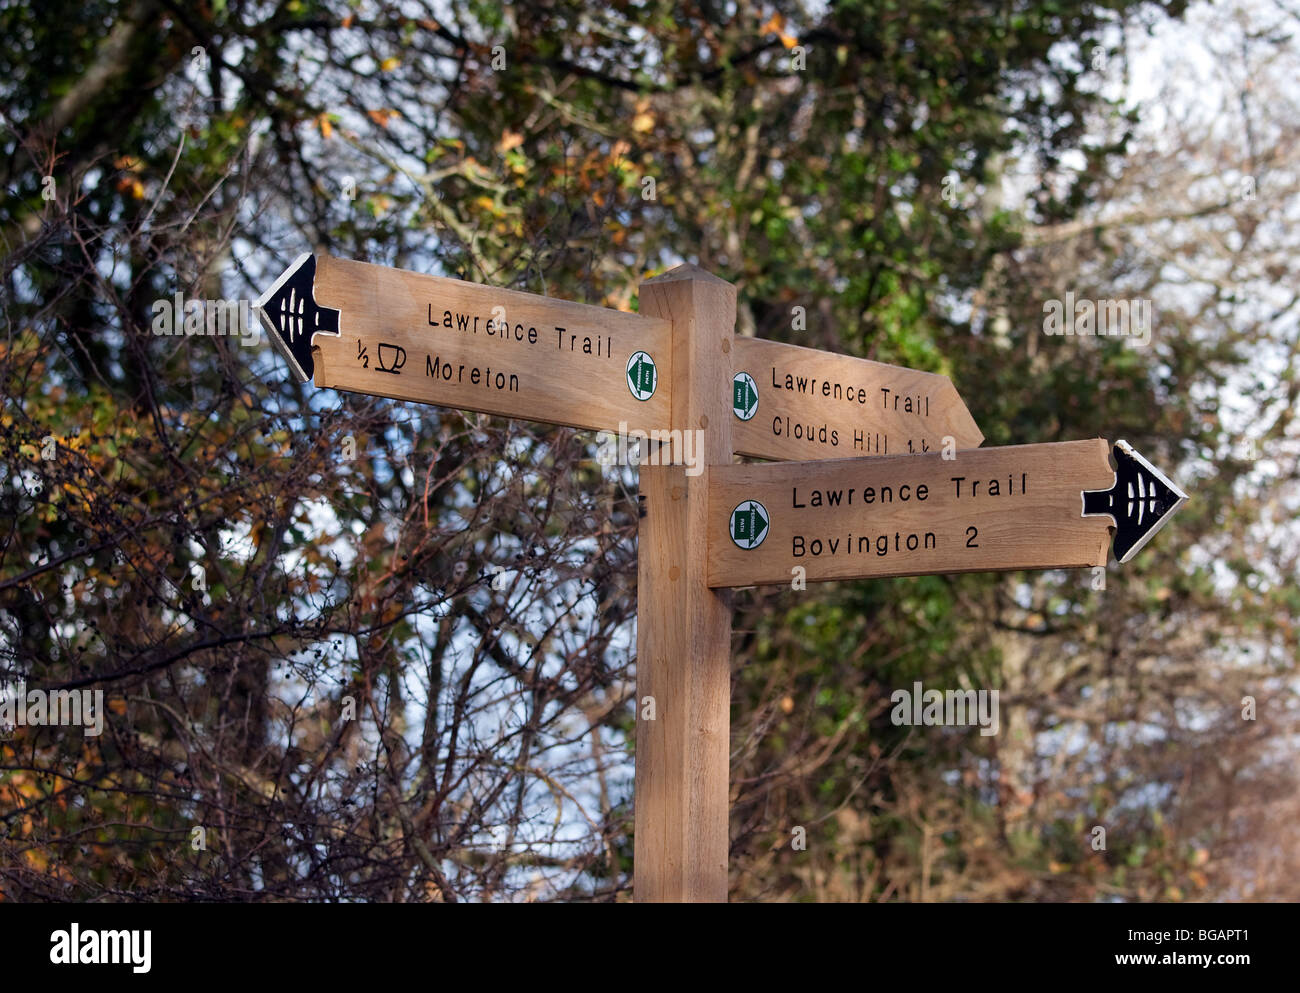 Signpost on the Lawrence Trail, a footpath linking Moreton Bovington and Clouds Hill  all closely associated with - Stock Image